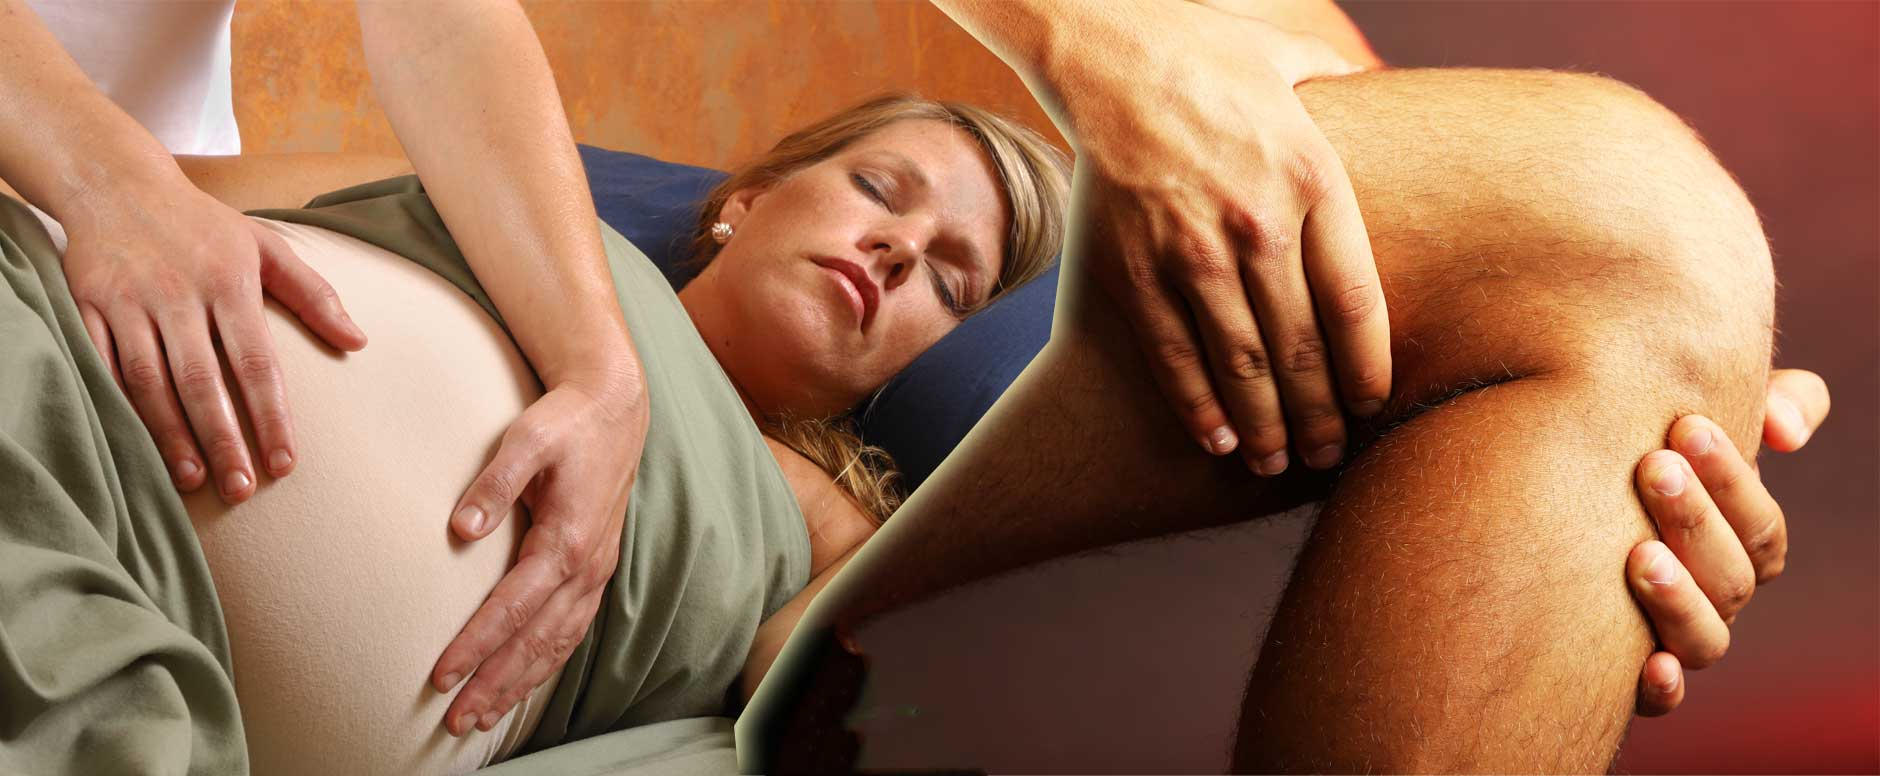 pregnancy-and-sport-massage